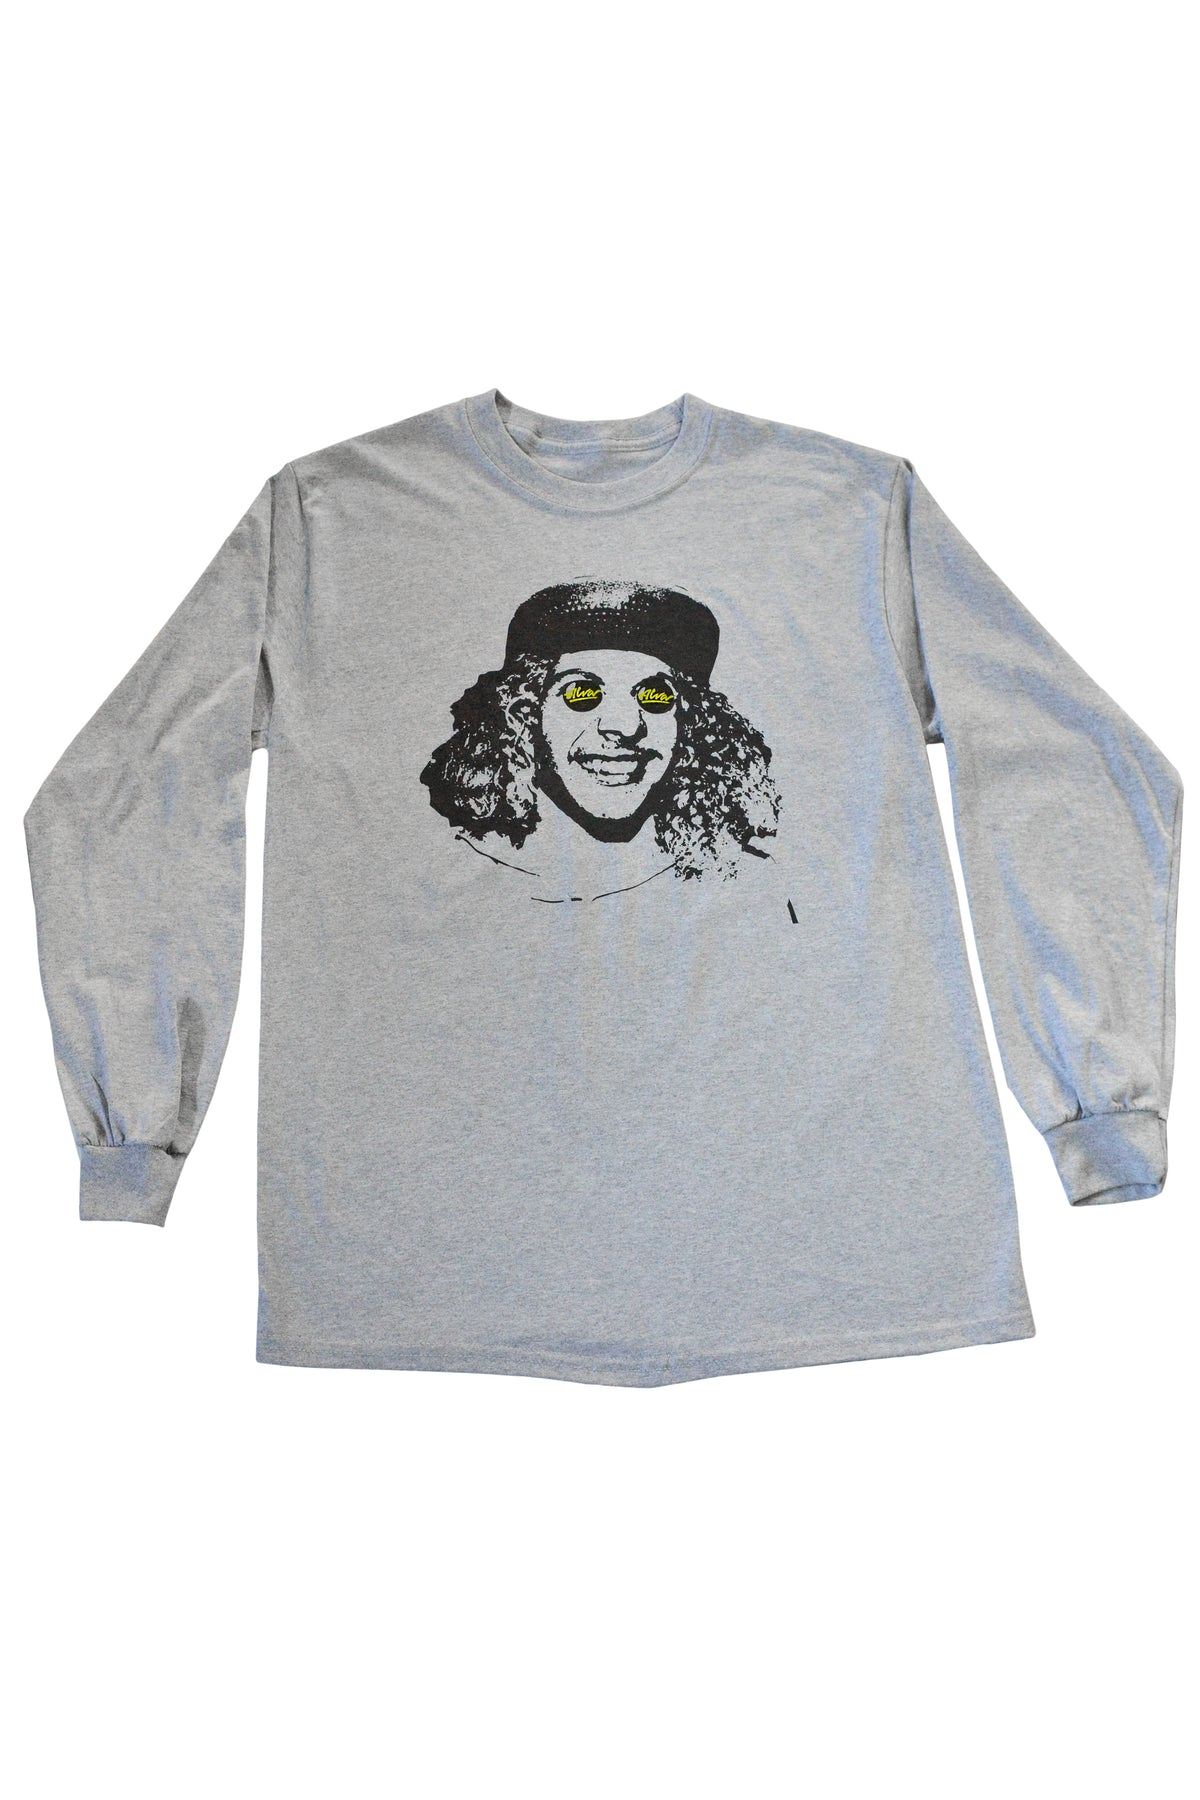 ALVA BUTTON EYES LONG SLEEVE - GREY